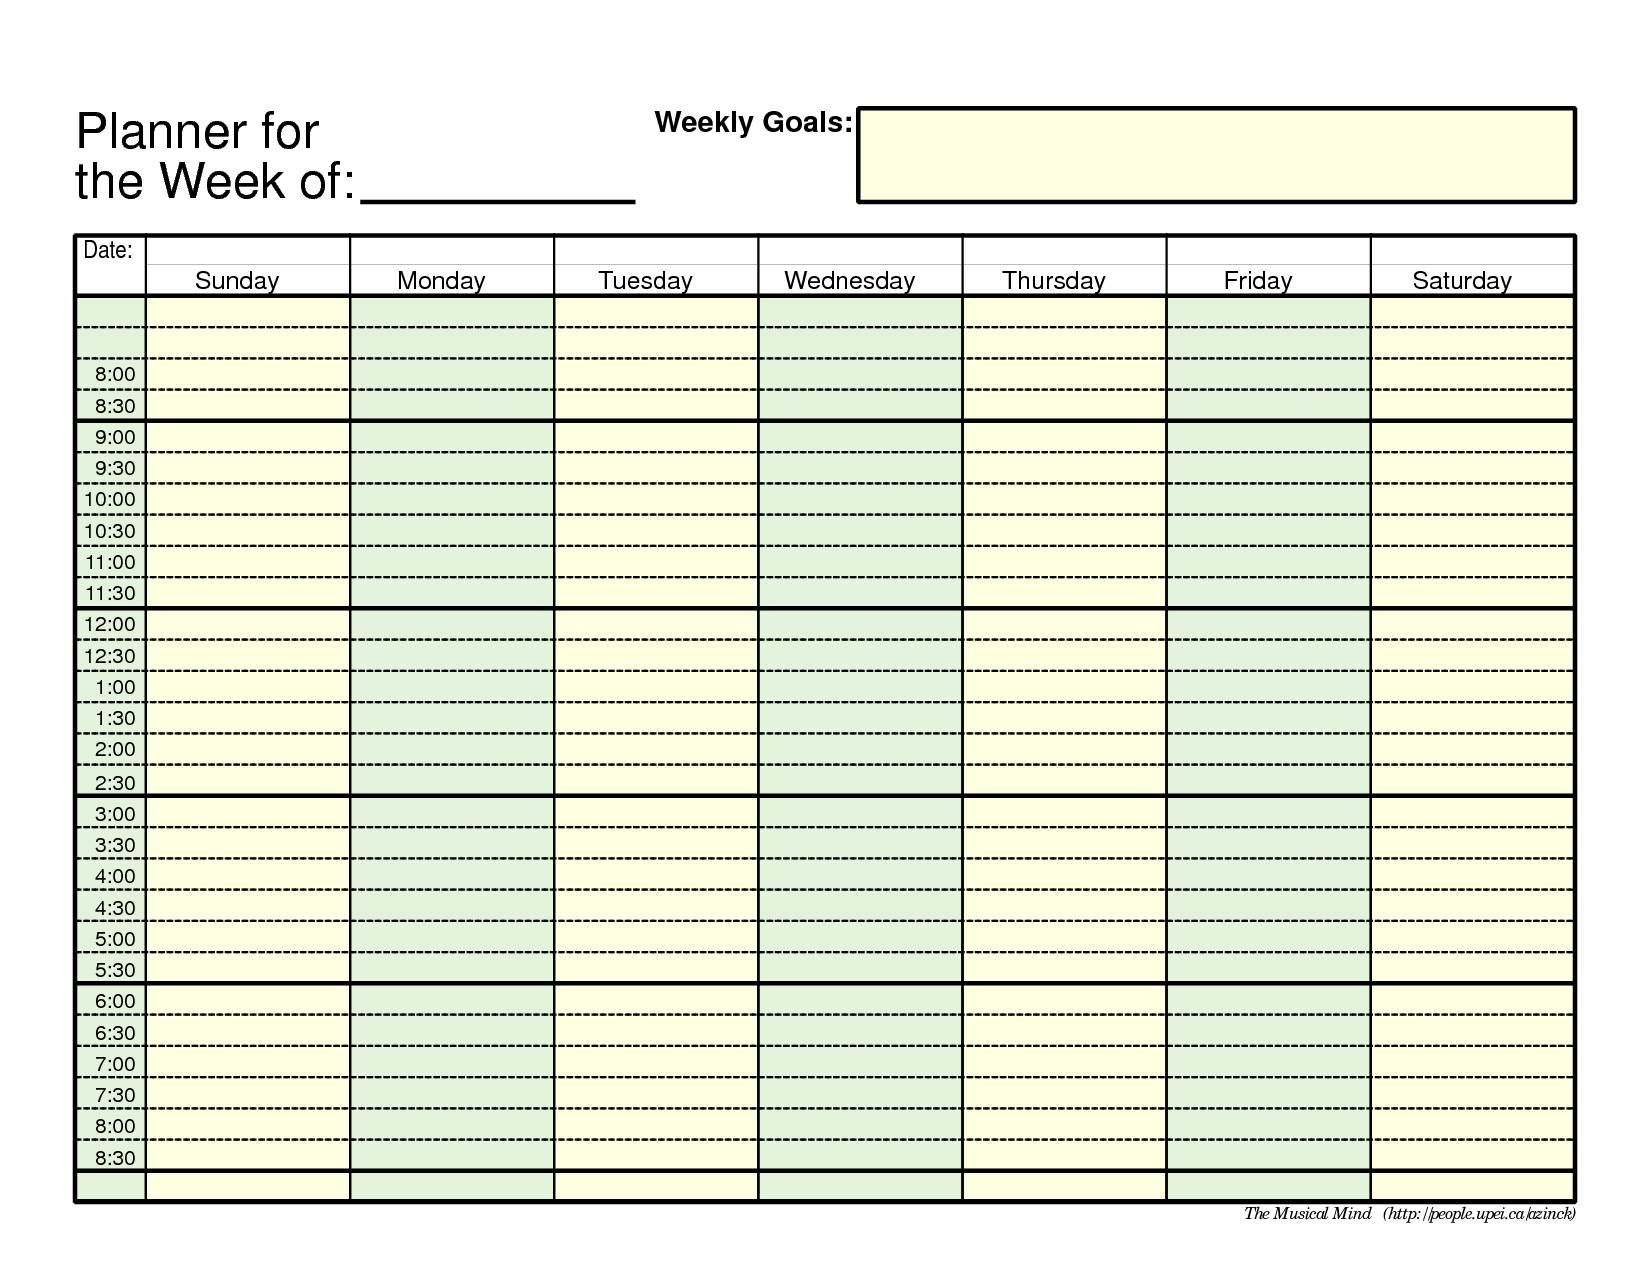 Weekly Planner Template Image 3